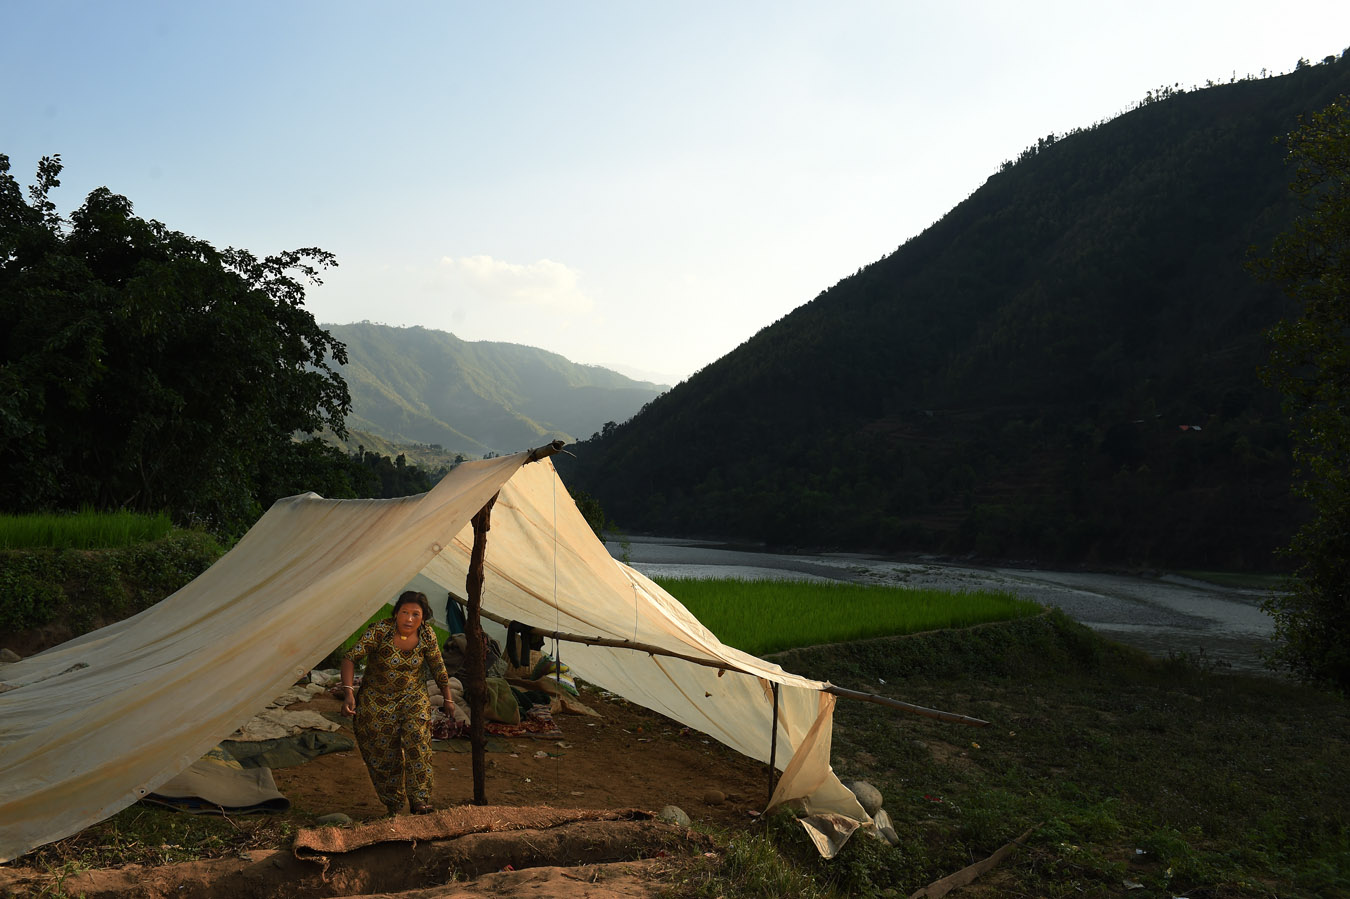 A woman walks out of a tent nestled in a scenic spot on Sunday May 03, 2015 in the Nuwakot District of Nepal. A deadly earthquake in Nepal has killed thousands. Tent encampments are a common sight as people have lost their homes or are afraid to return to them because of earthquake damage. (Photo by Matt McClain/ The Washington Post)